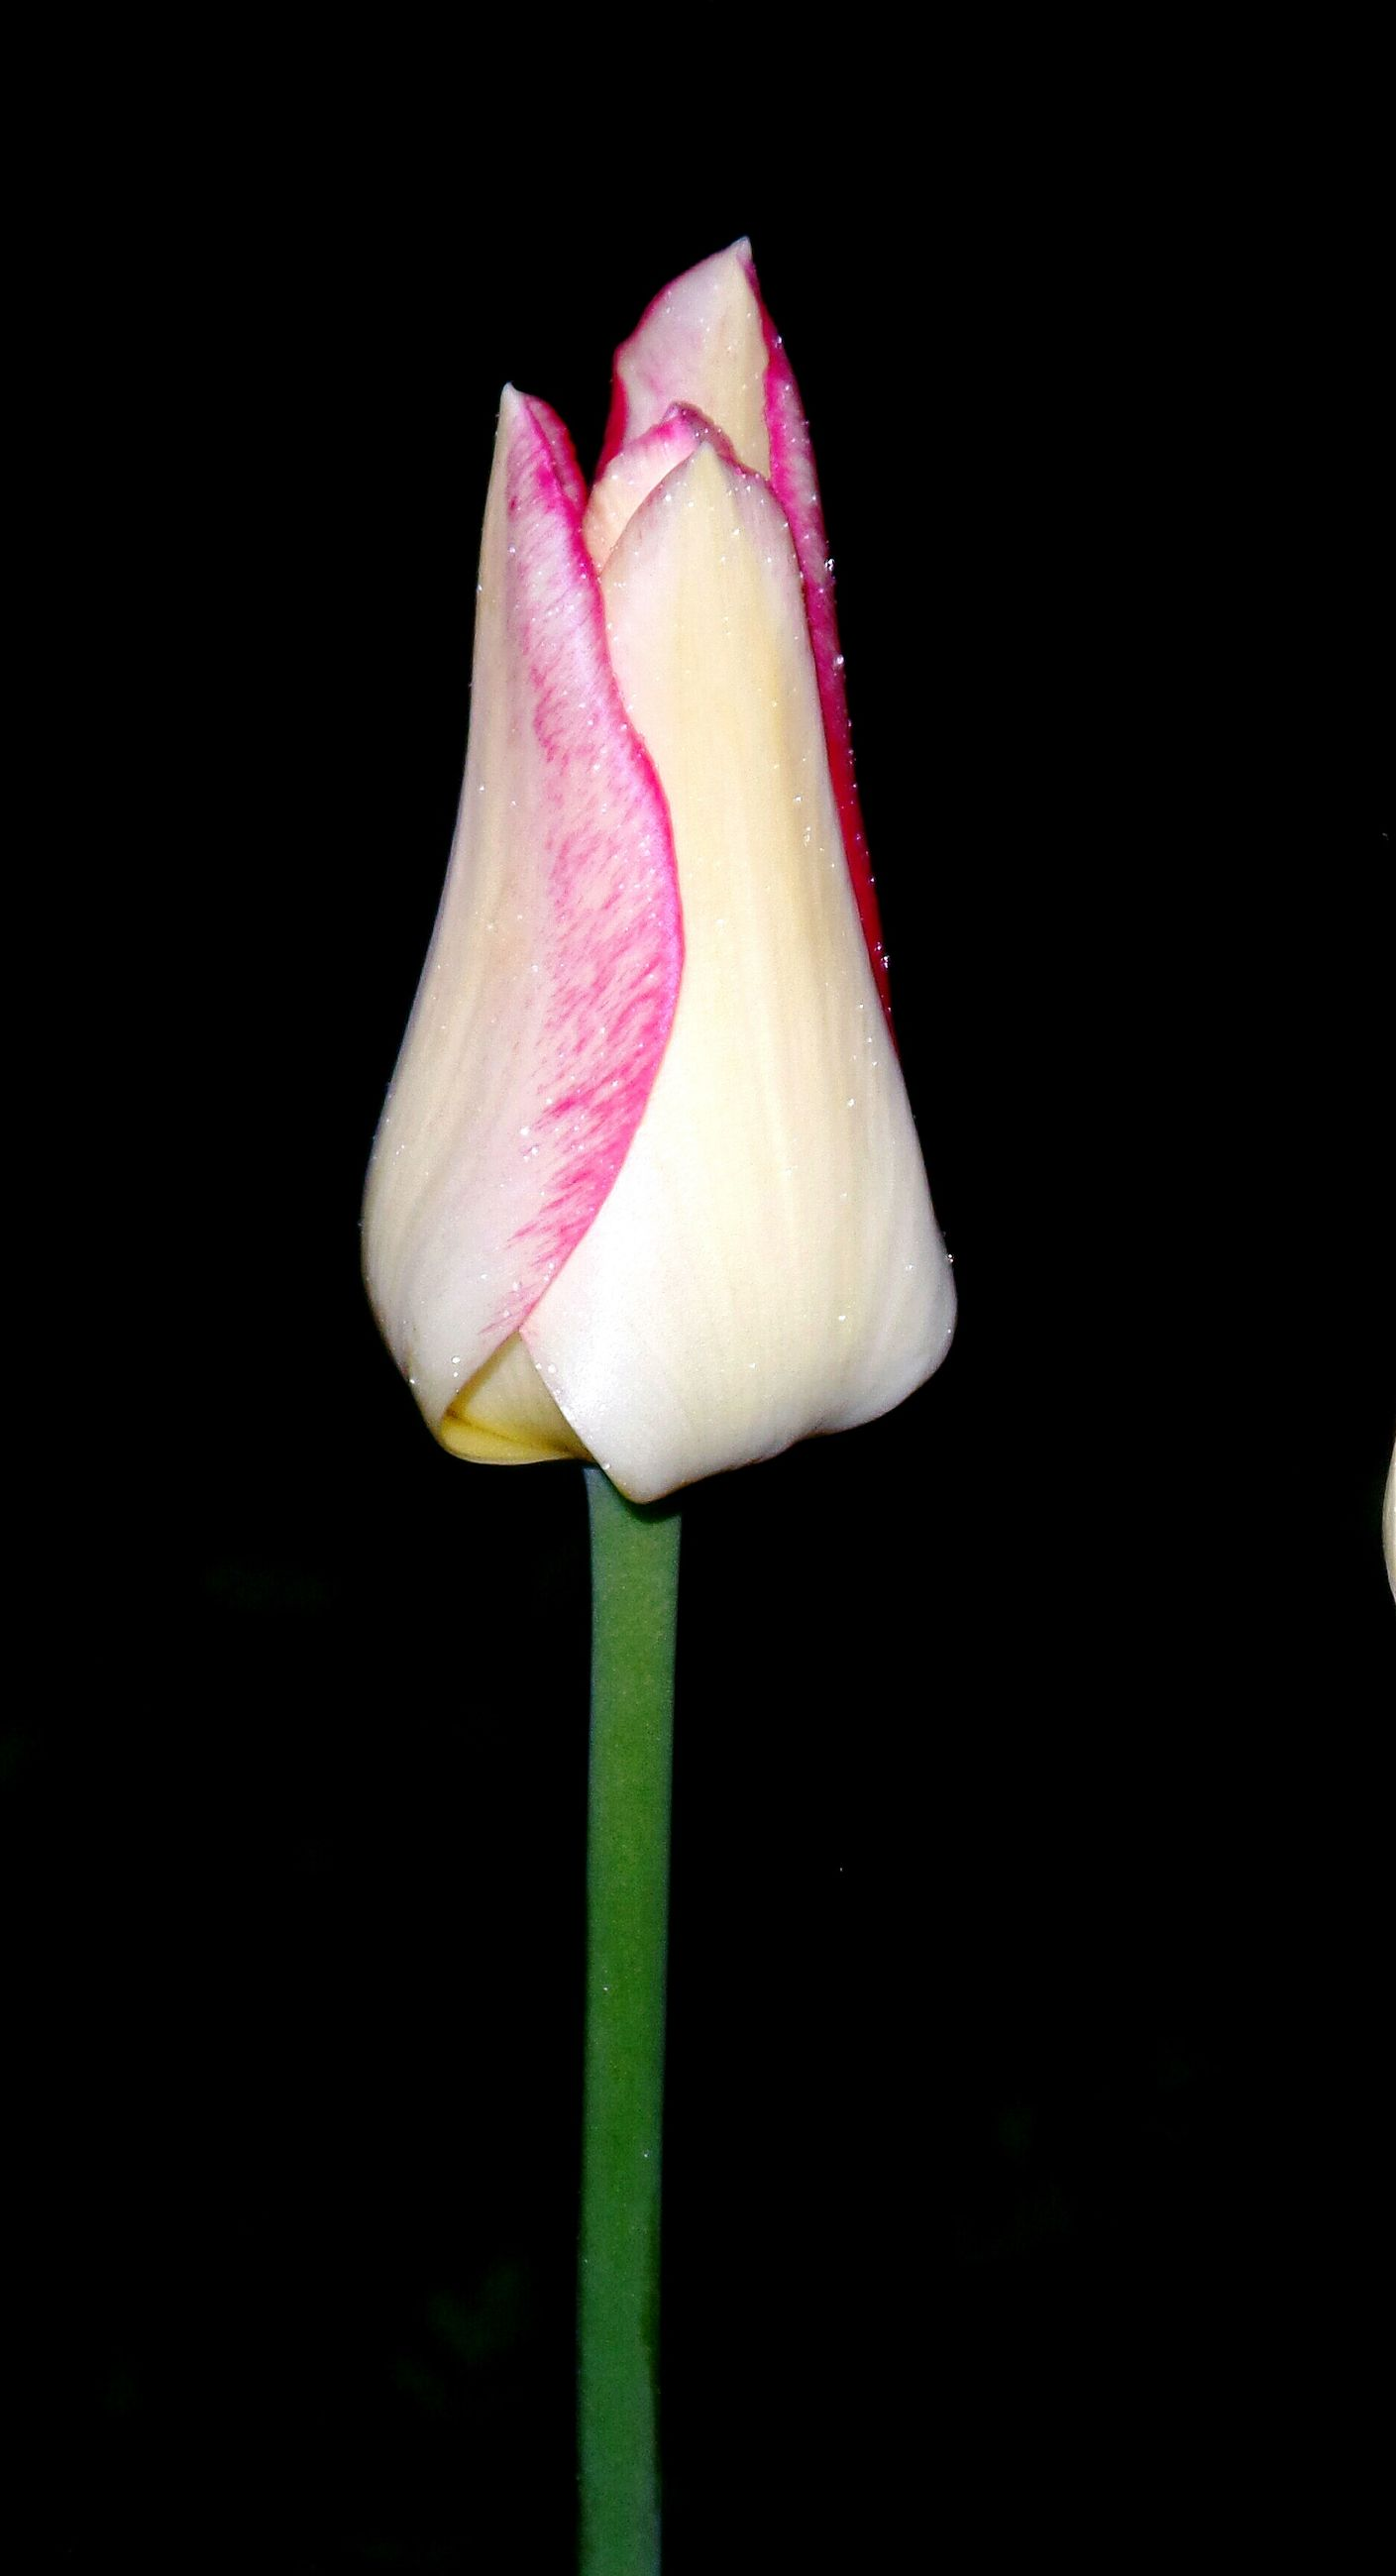 flower, petal, fragility, freshness, flower head, beauty in nature, nature, growth, black background, night, pink color, no people, close-up, studio shot, new life, blooming, outdoors